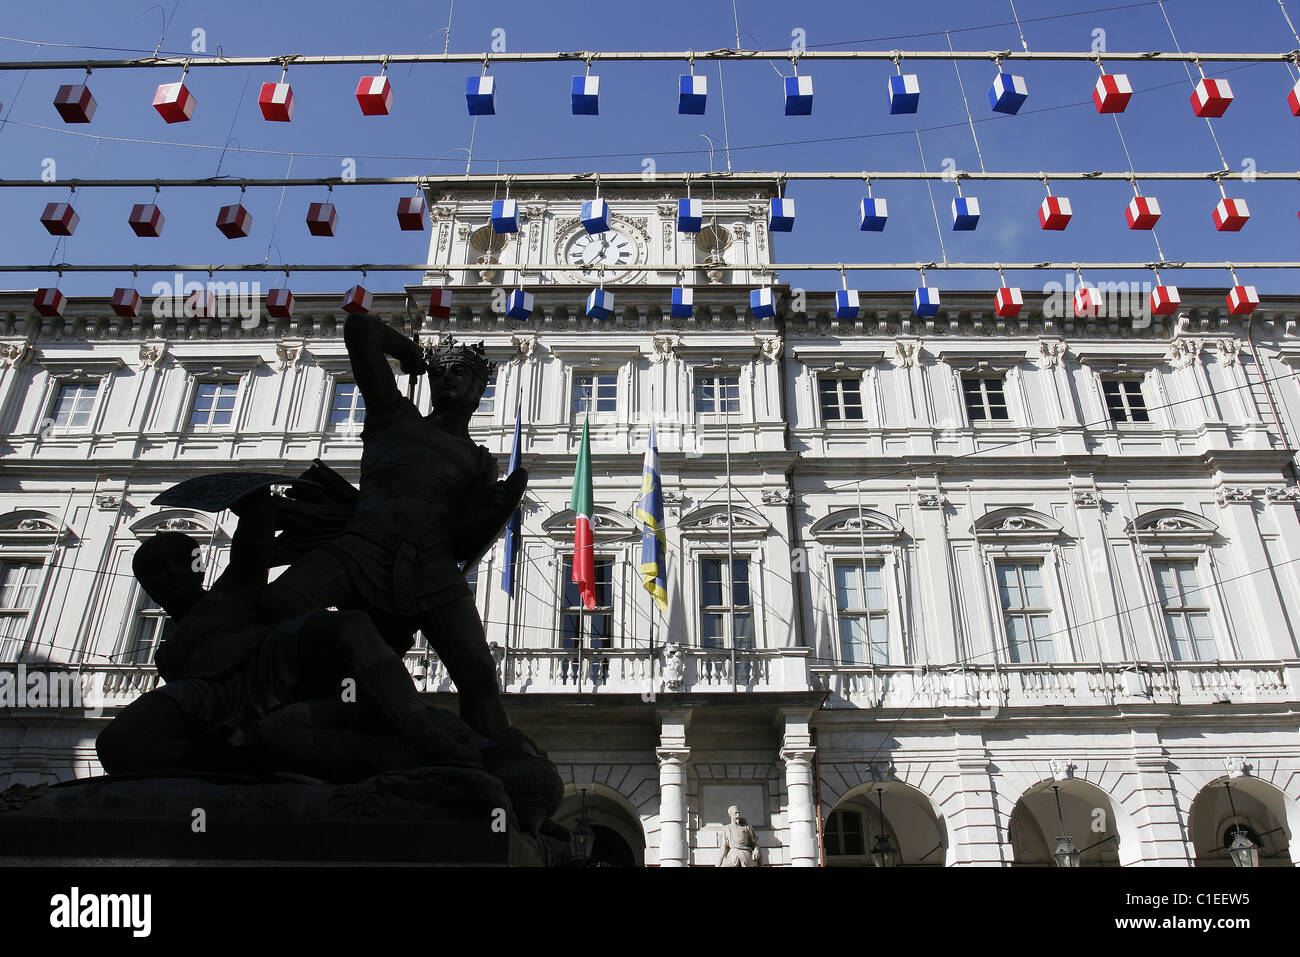 Italy Piedmont region Turin city the Palazzo di Citta head office of the municipality of Turin a Baroque Palace - Stock Image